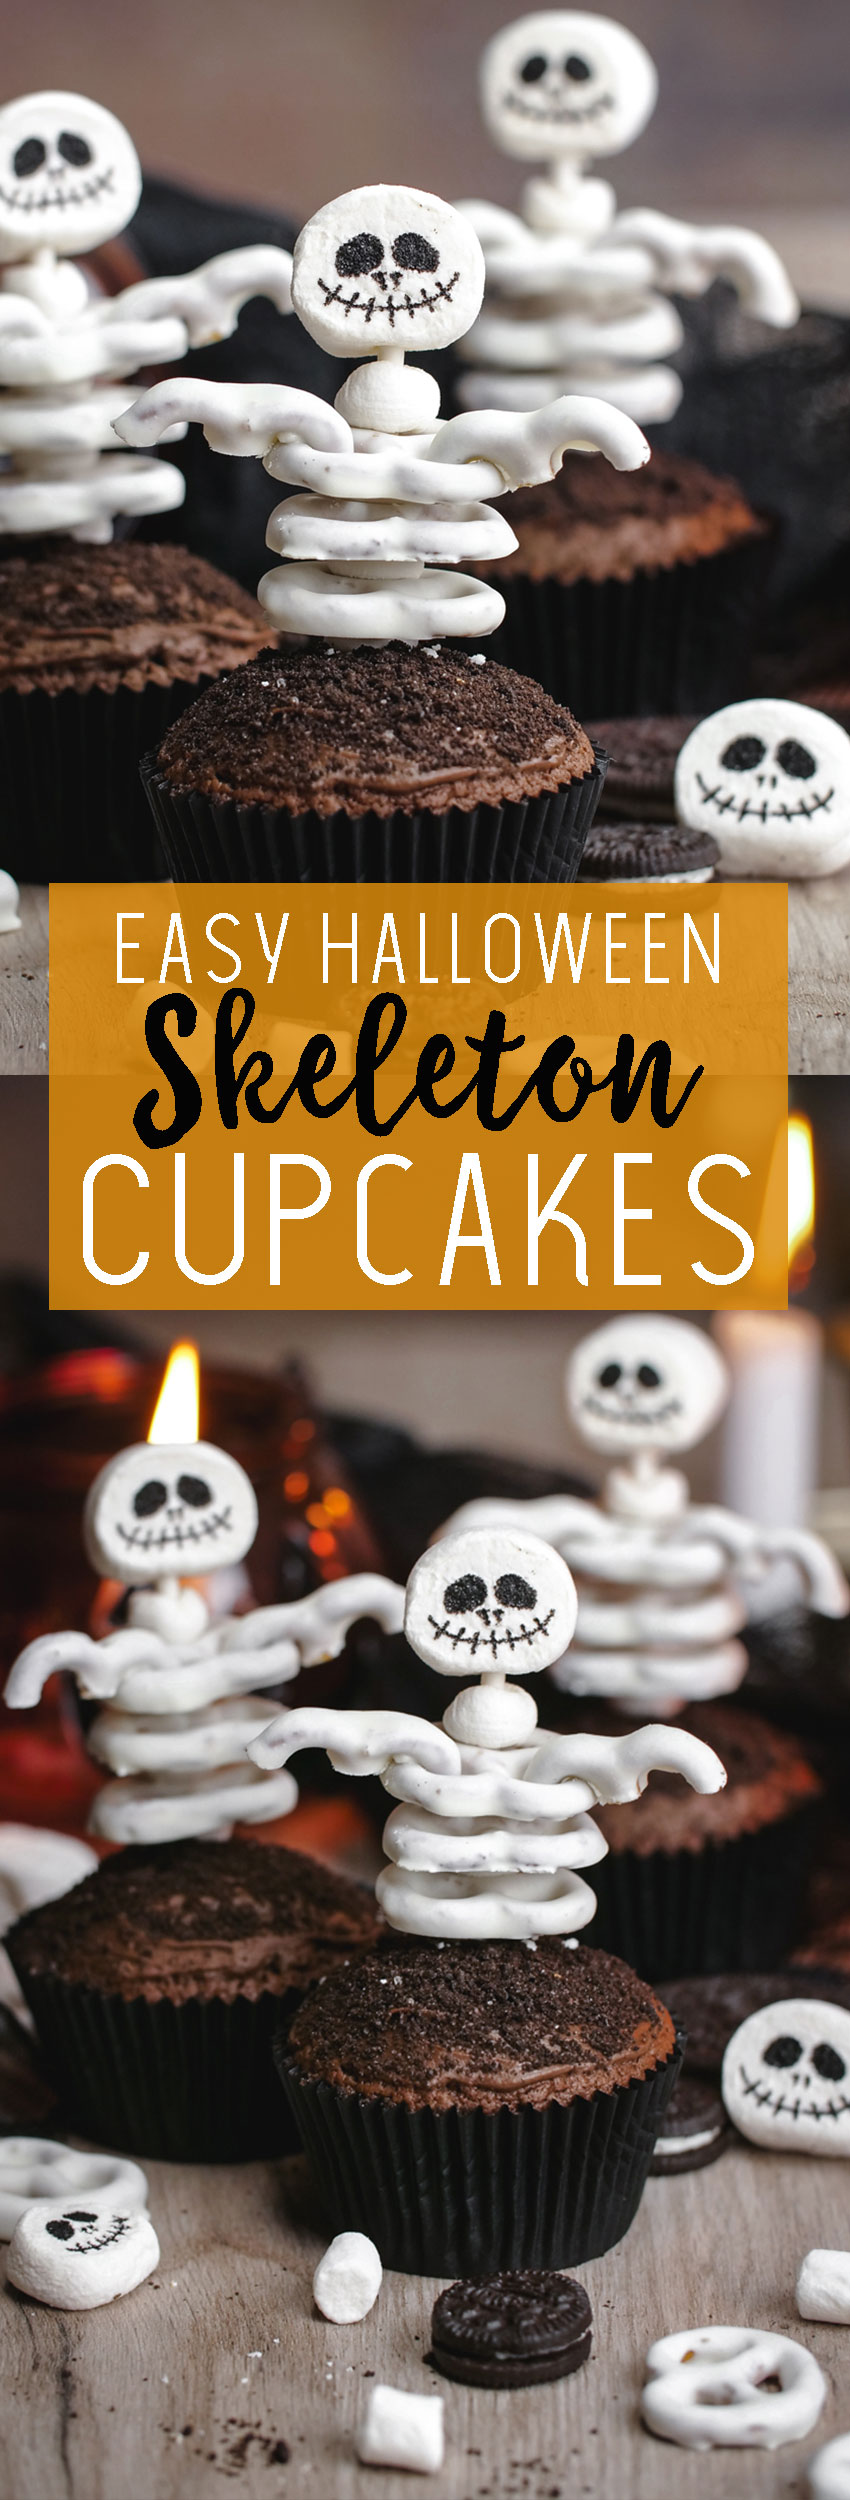 Easy Halloween Skeleton Cupcakes! Delicious, easy, and fun.